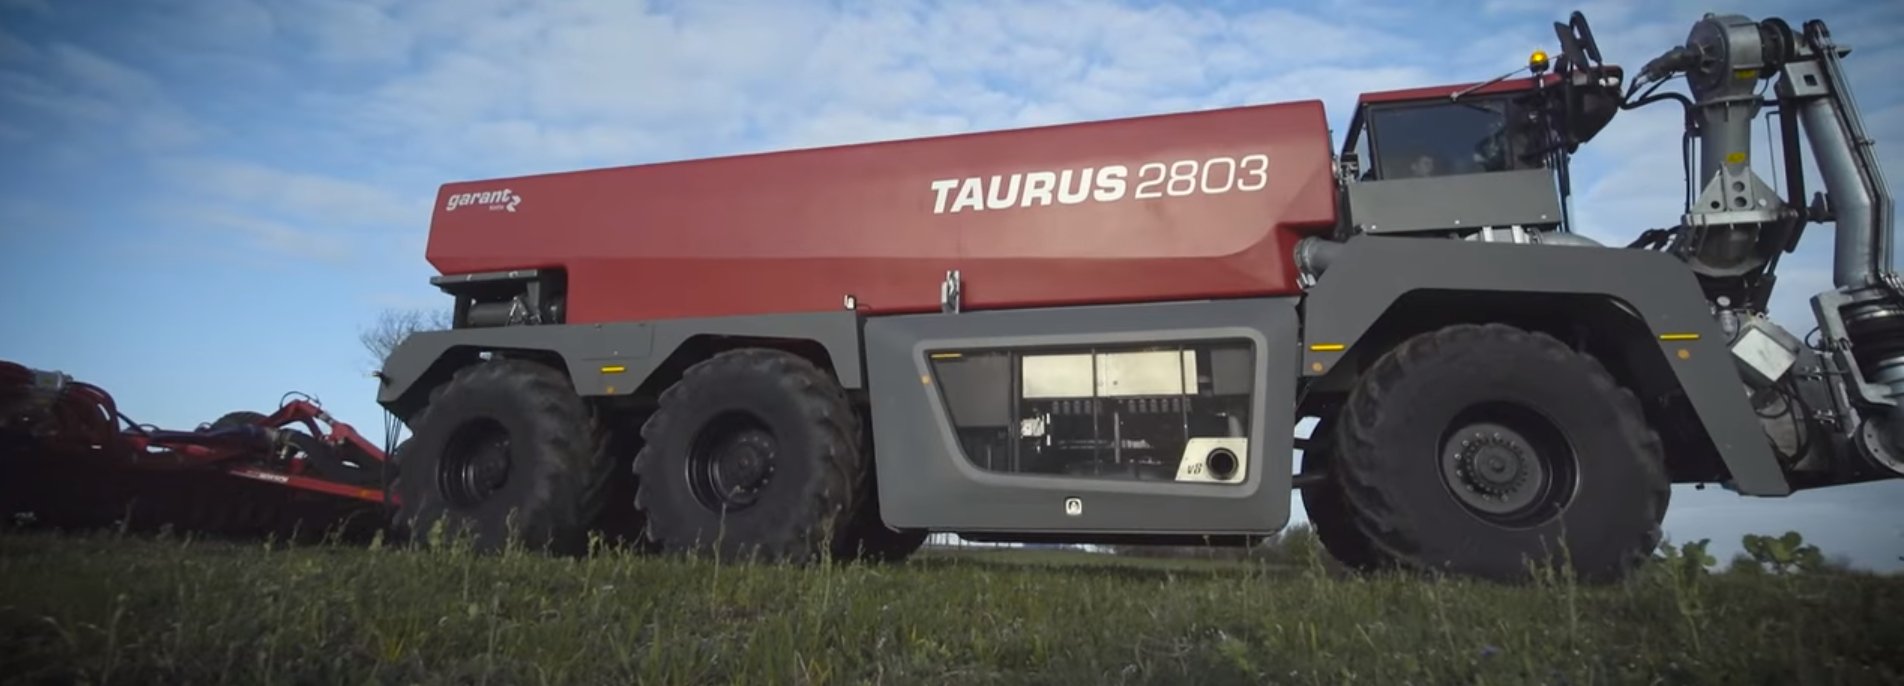 Video: Giant 650hp slurry tanker on the way to UK